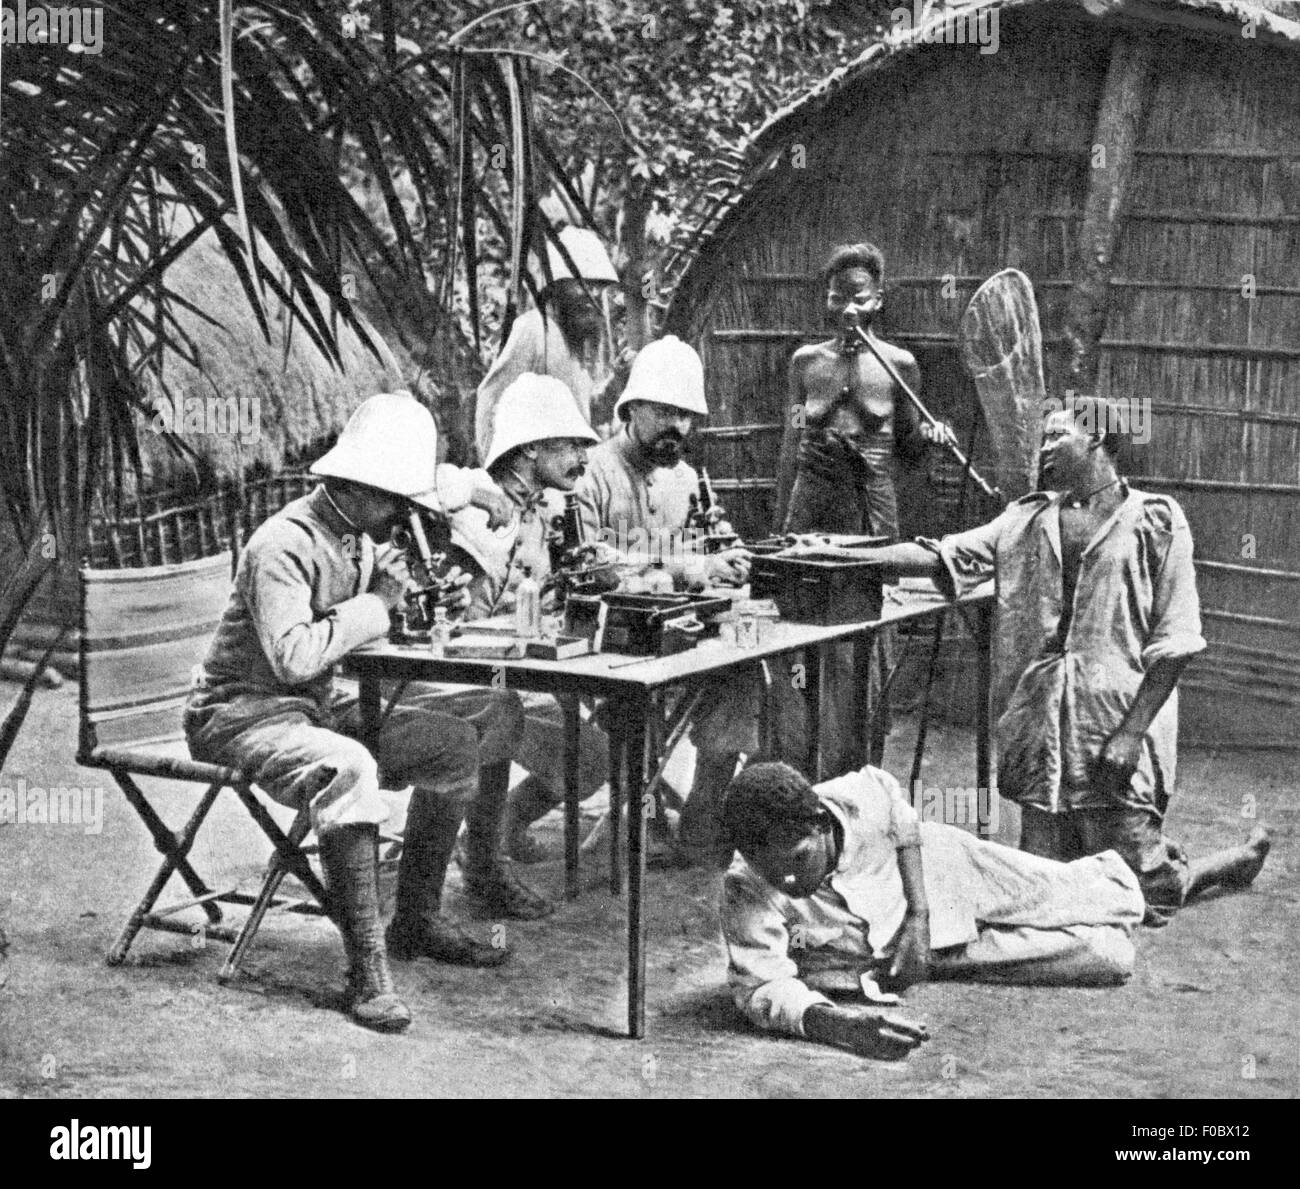 colonialism, Africa, white scientists doing microscopic analyses, early 20th century, 20th century, imperialism, - Stock Image